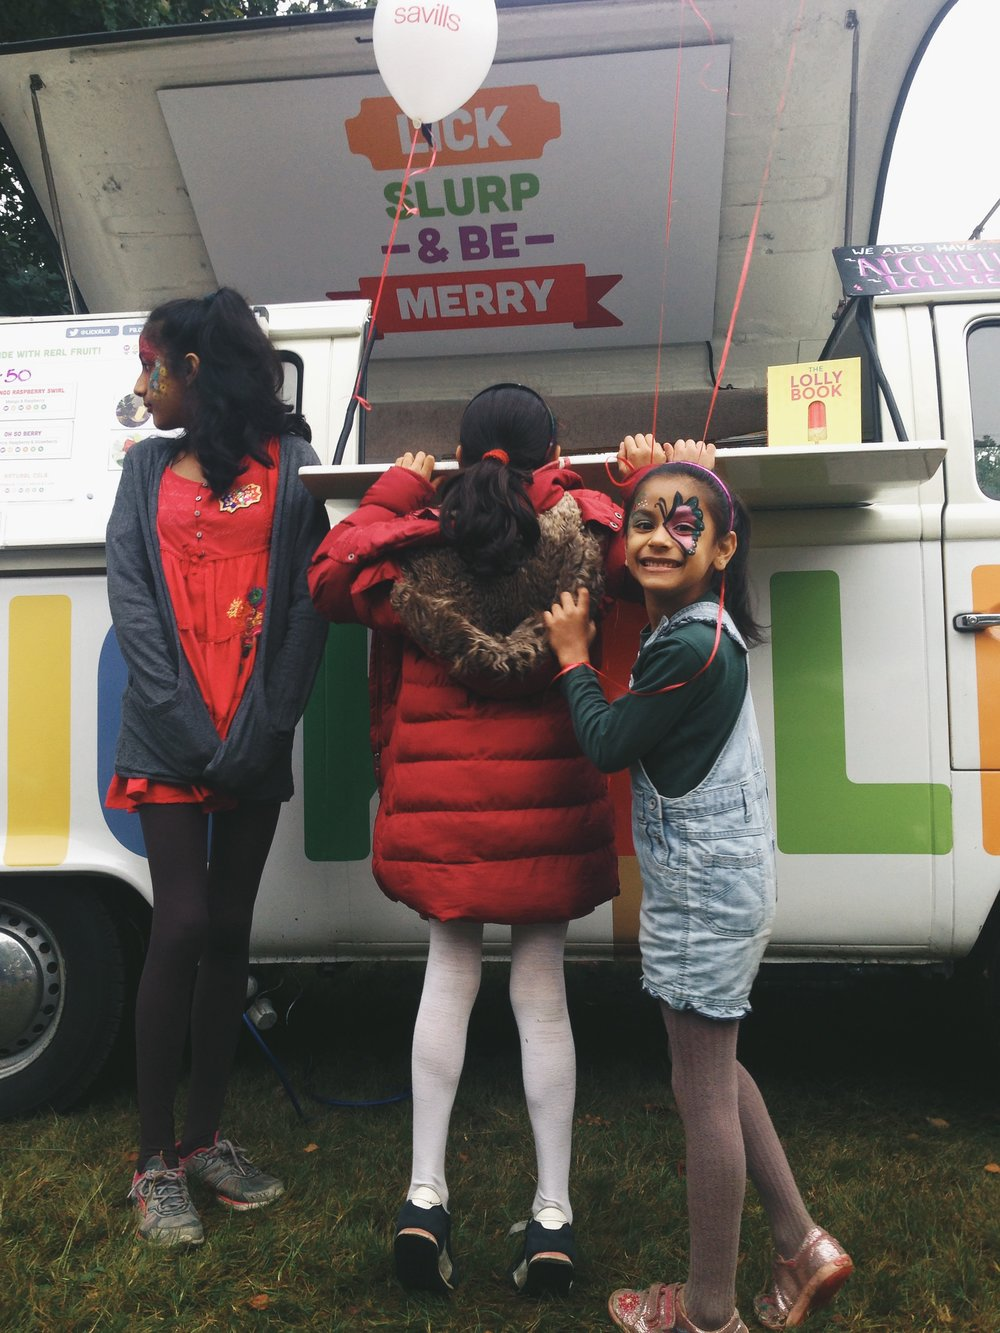 These three lovely sisters hung out around our lollimobile Kenny all day! So much fun :)